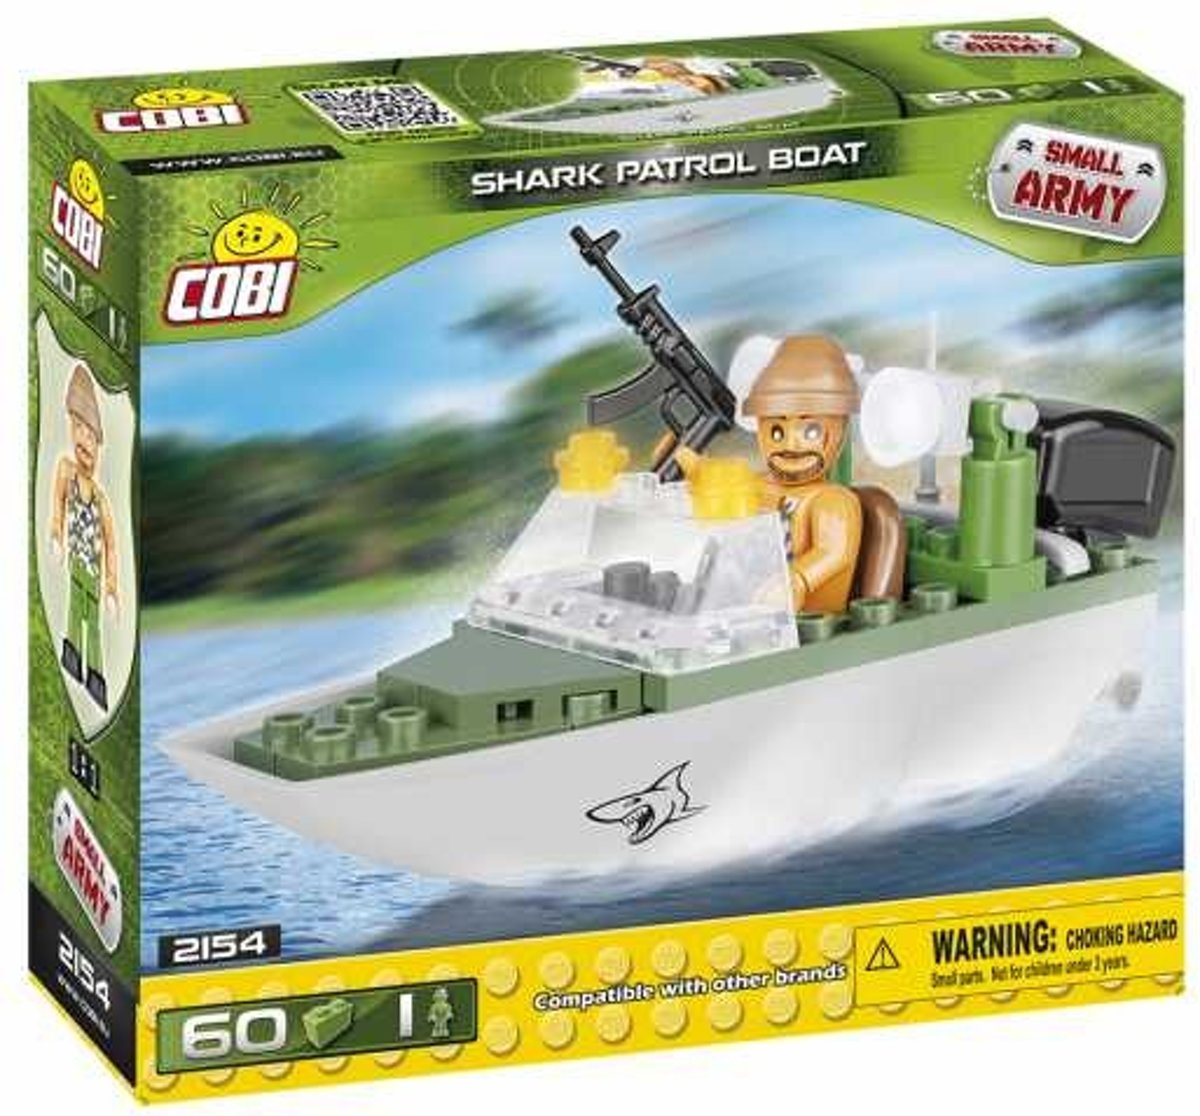 Cobi Small Army Shark Patrol Boat Bouwset 60-delig 2154